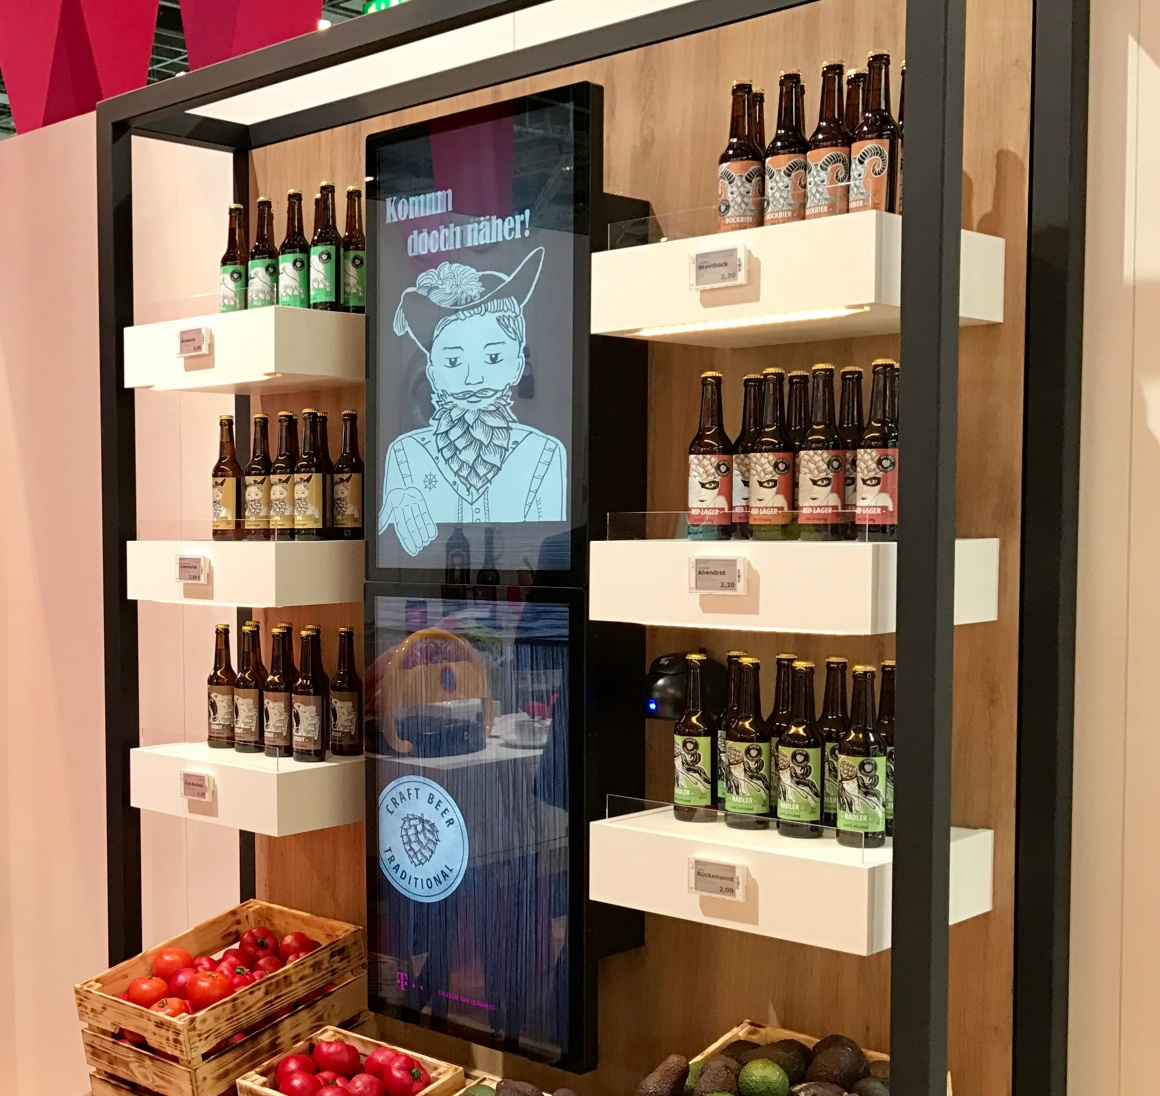 Photo: Internet of Things retail shelf, filled with bottles, with interactive...